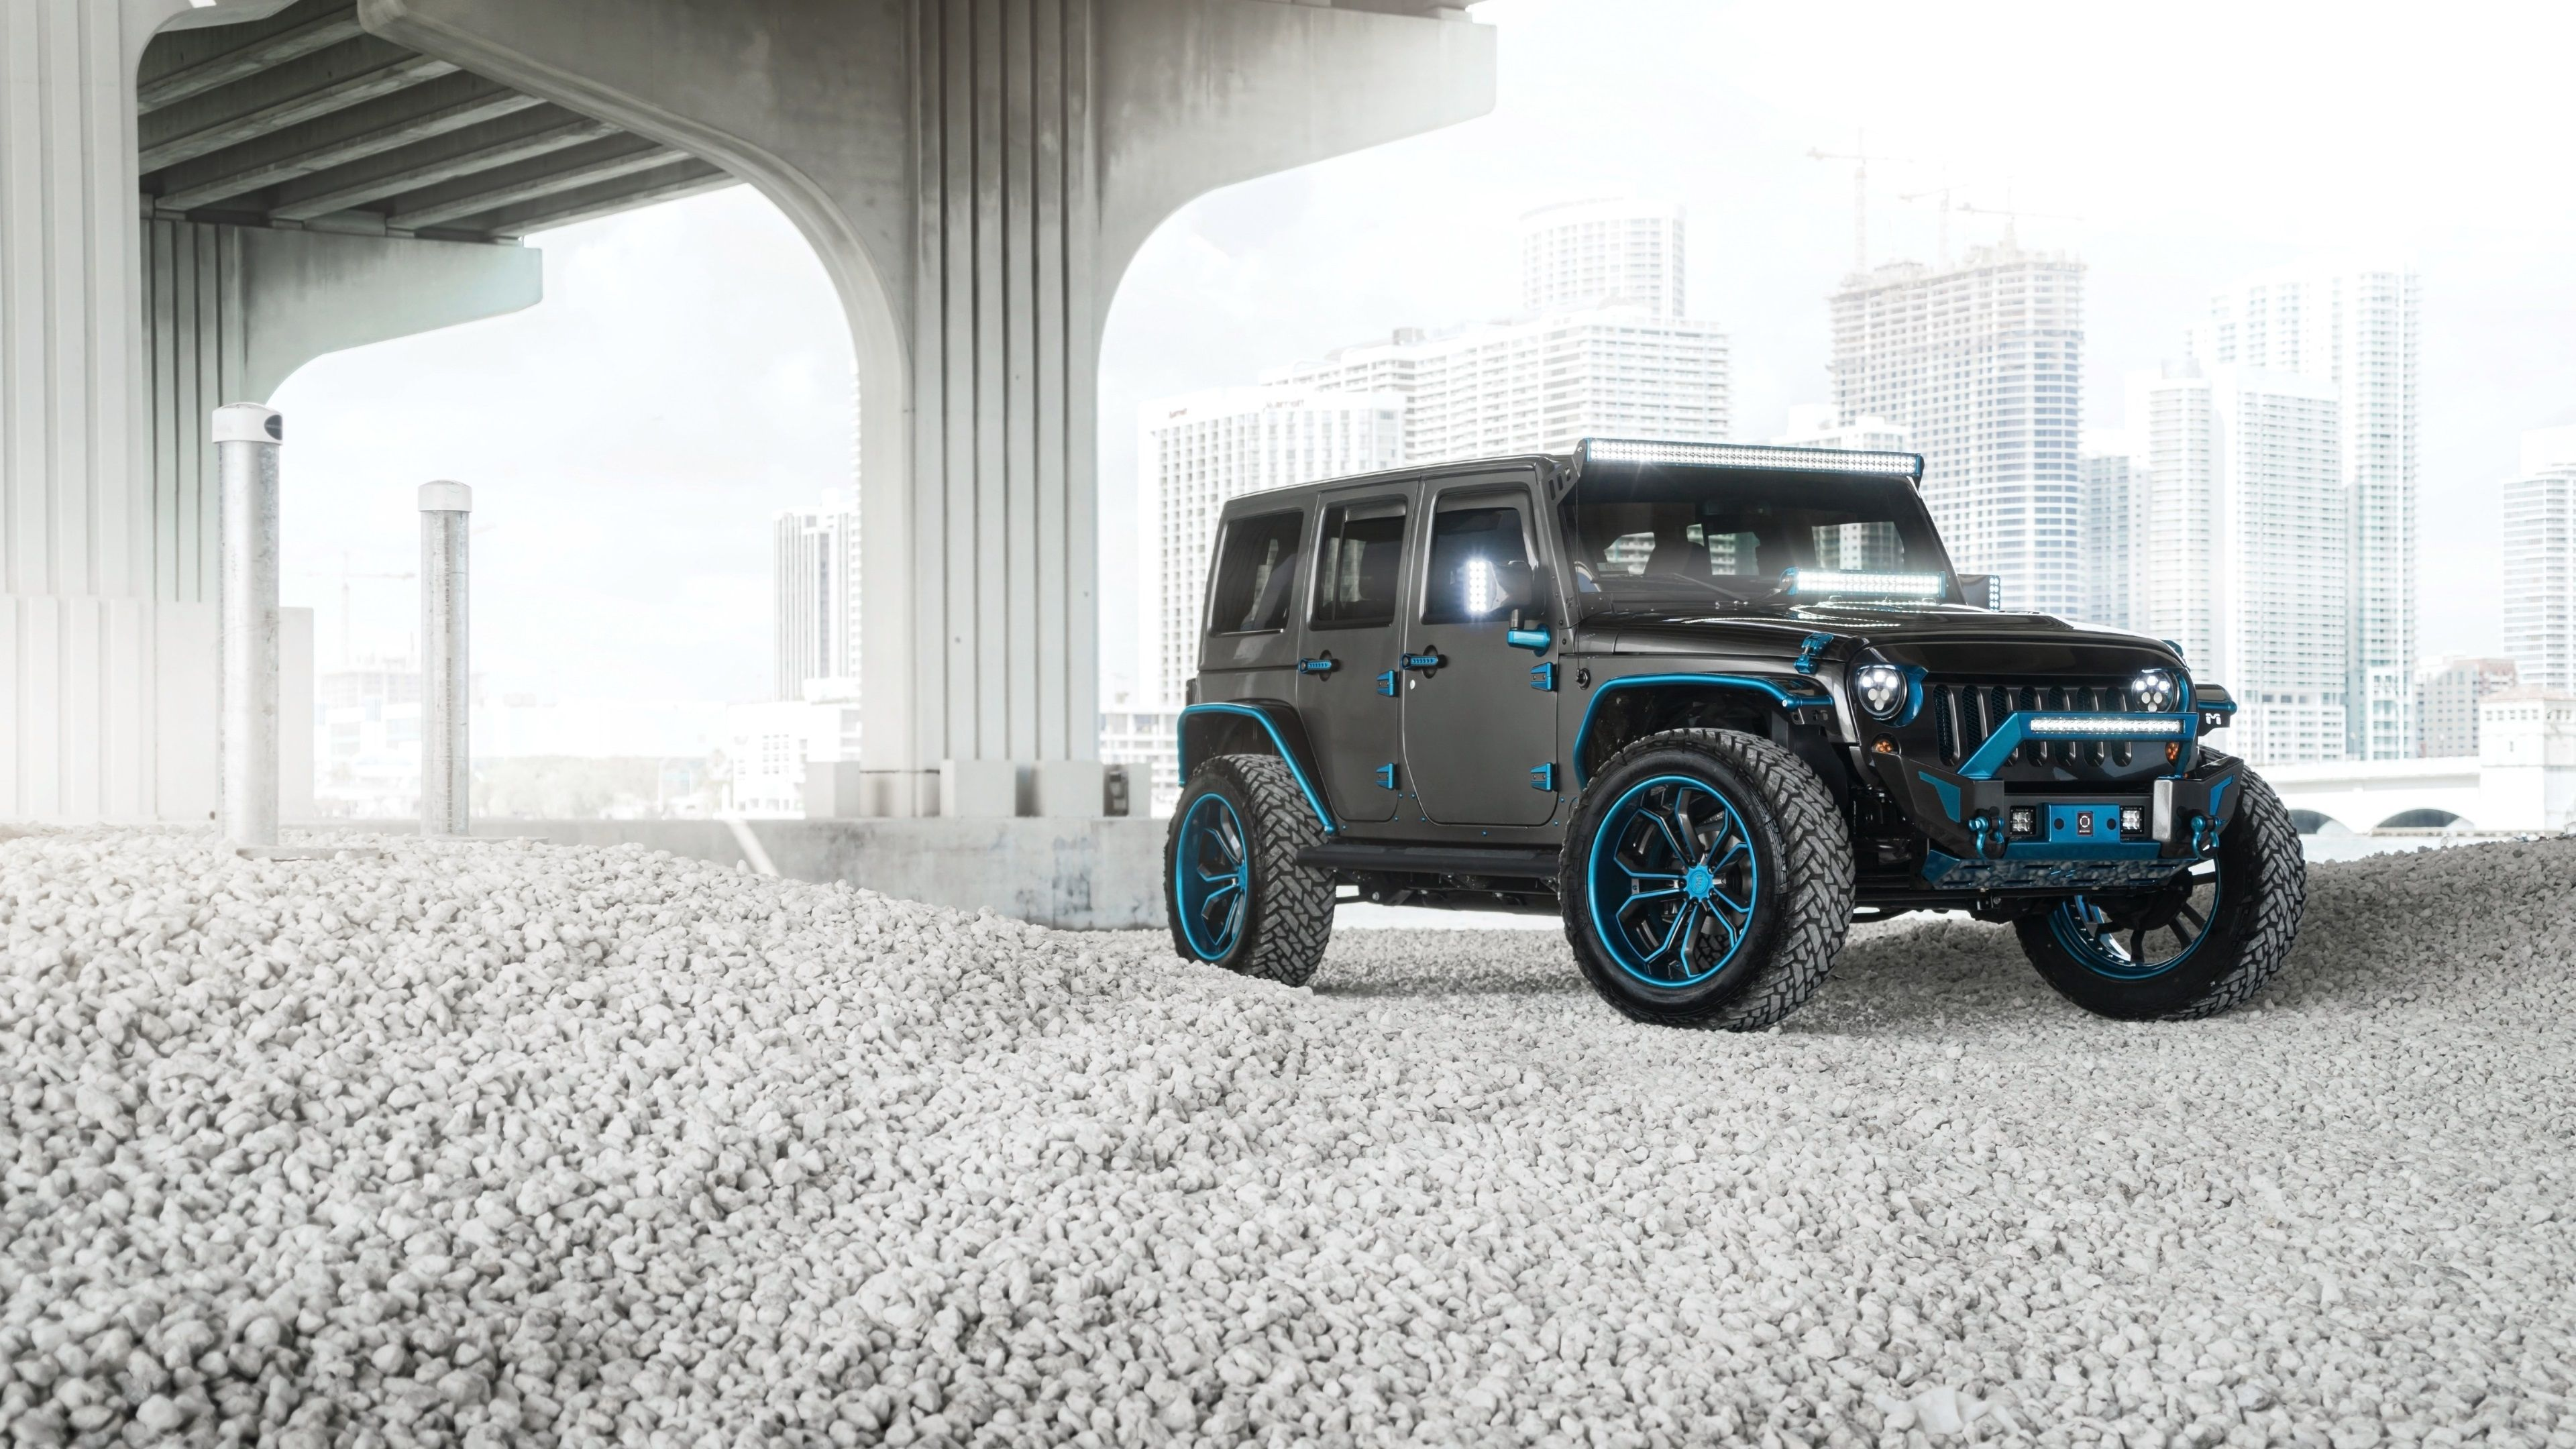 3840x2160 Jeep 4k Download Hd Wallpaper For Desktop With Images